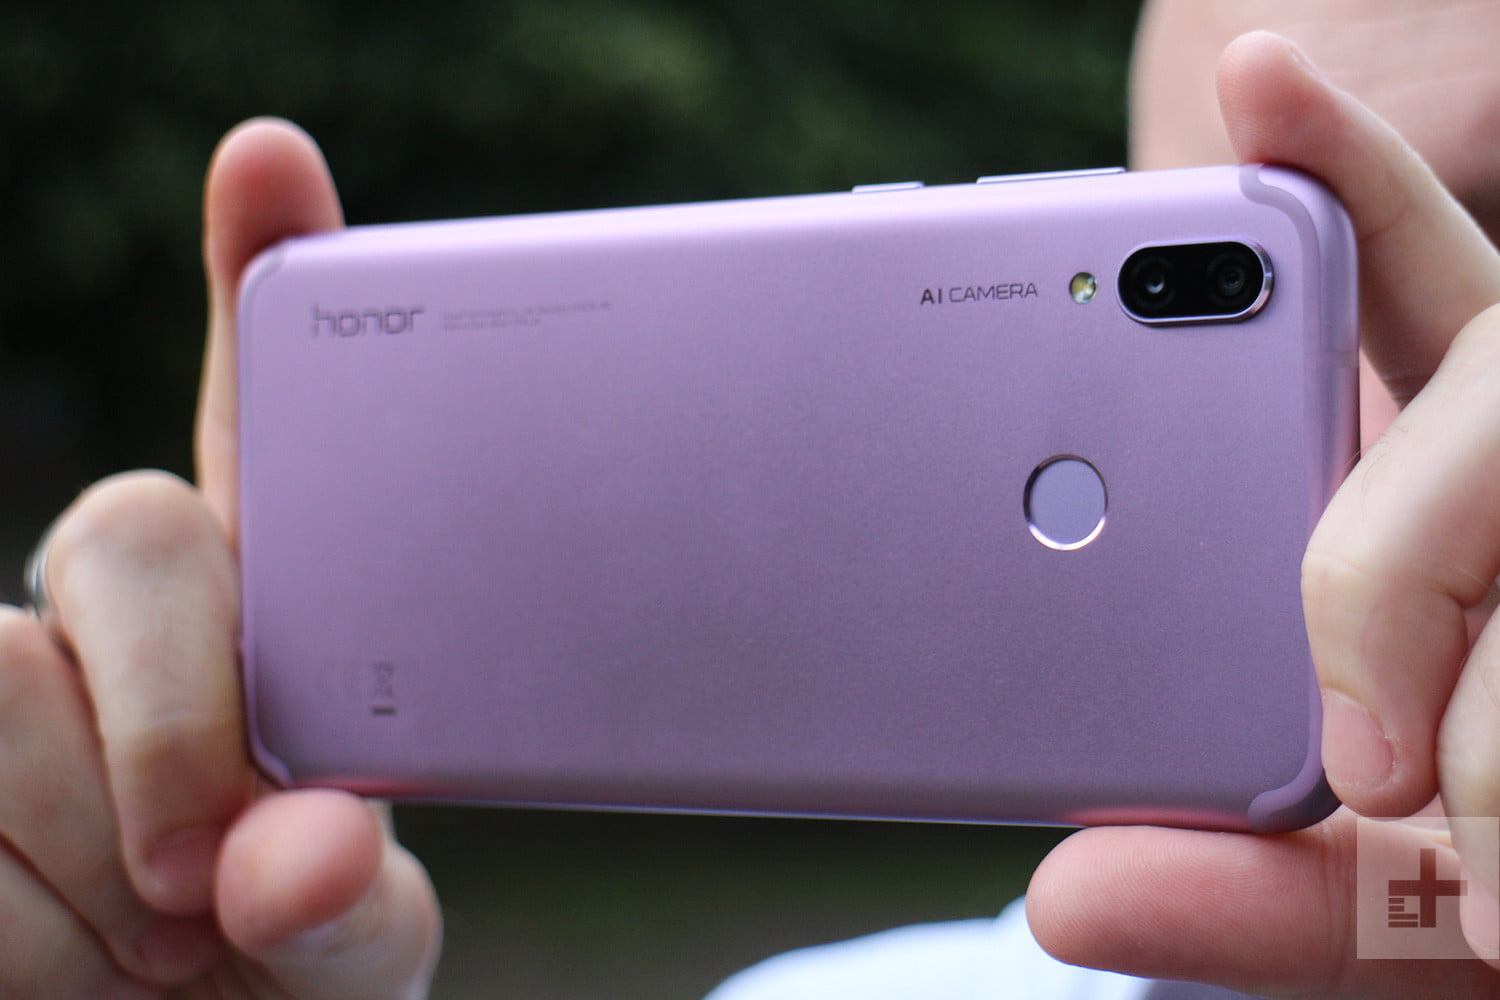 Honor Play Review | Digital Trends